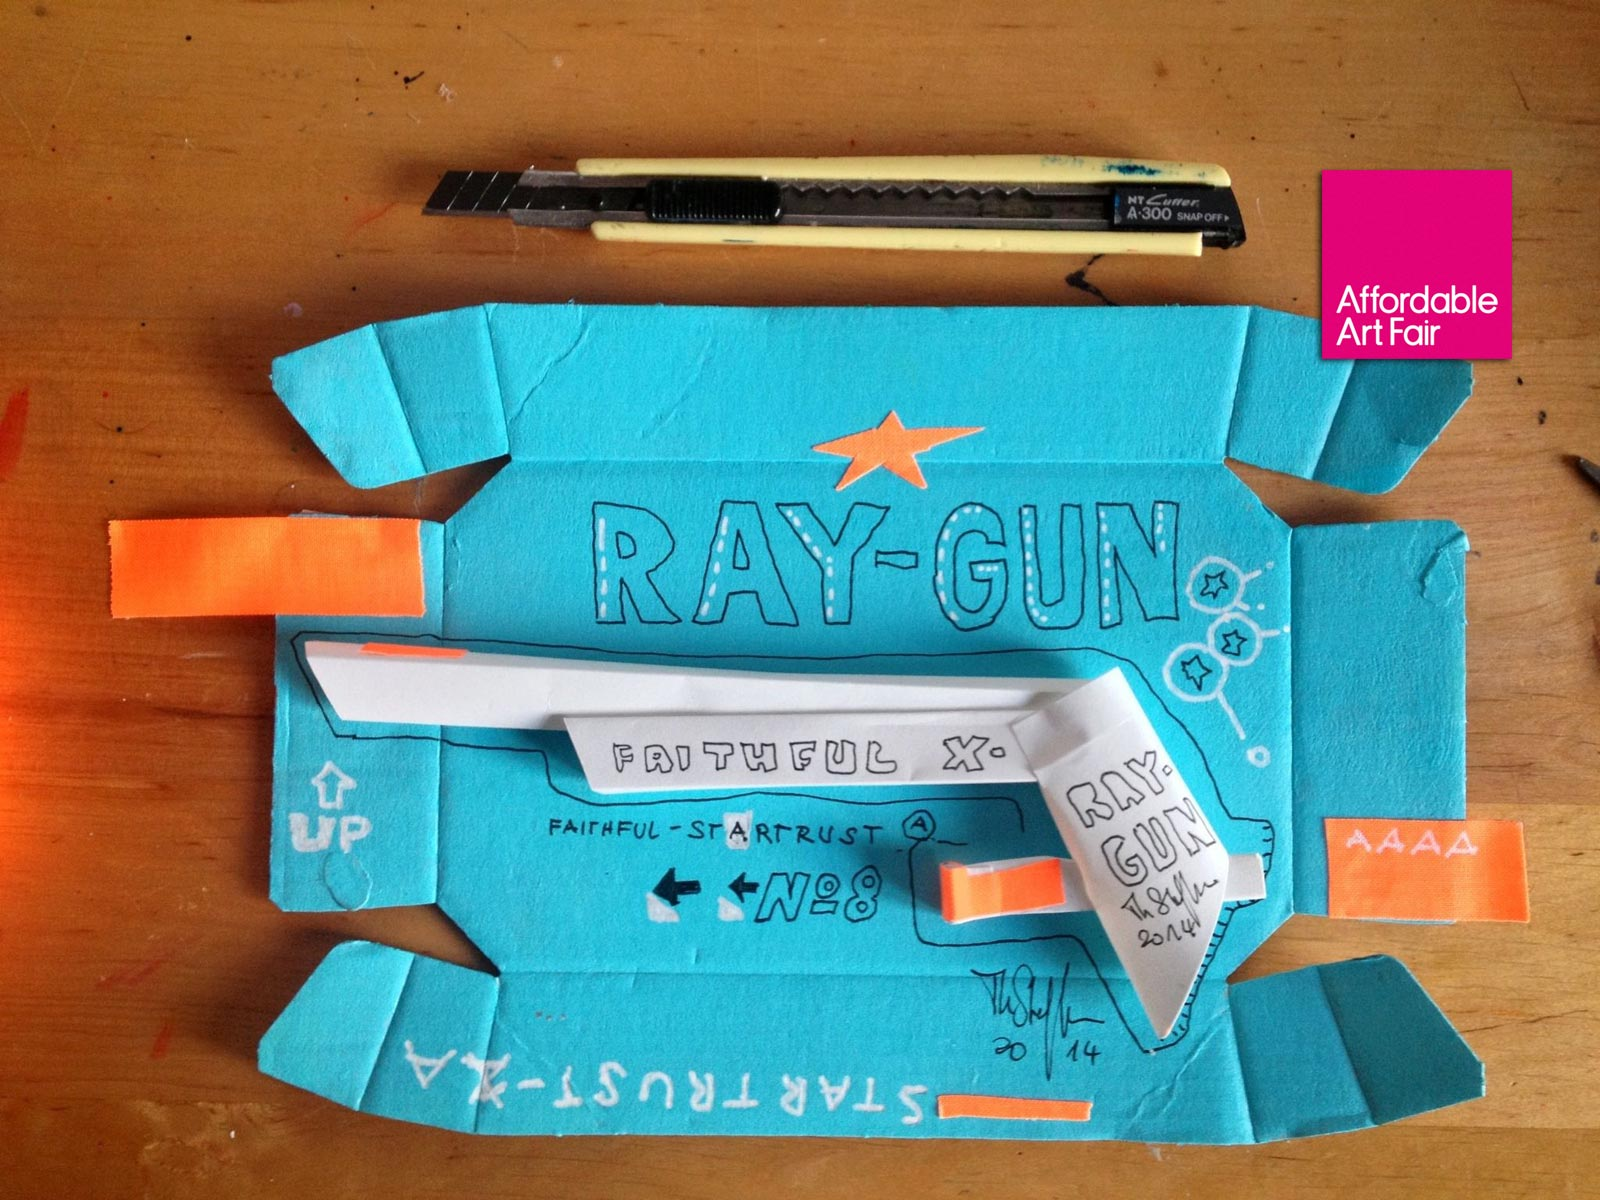 Ray-Gun No.8 Thomas Steffens | Affordable Art Fair Hamburg 2014